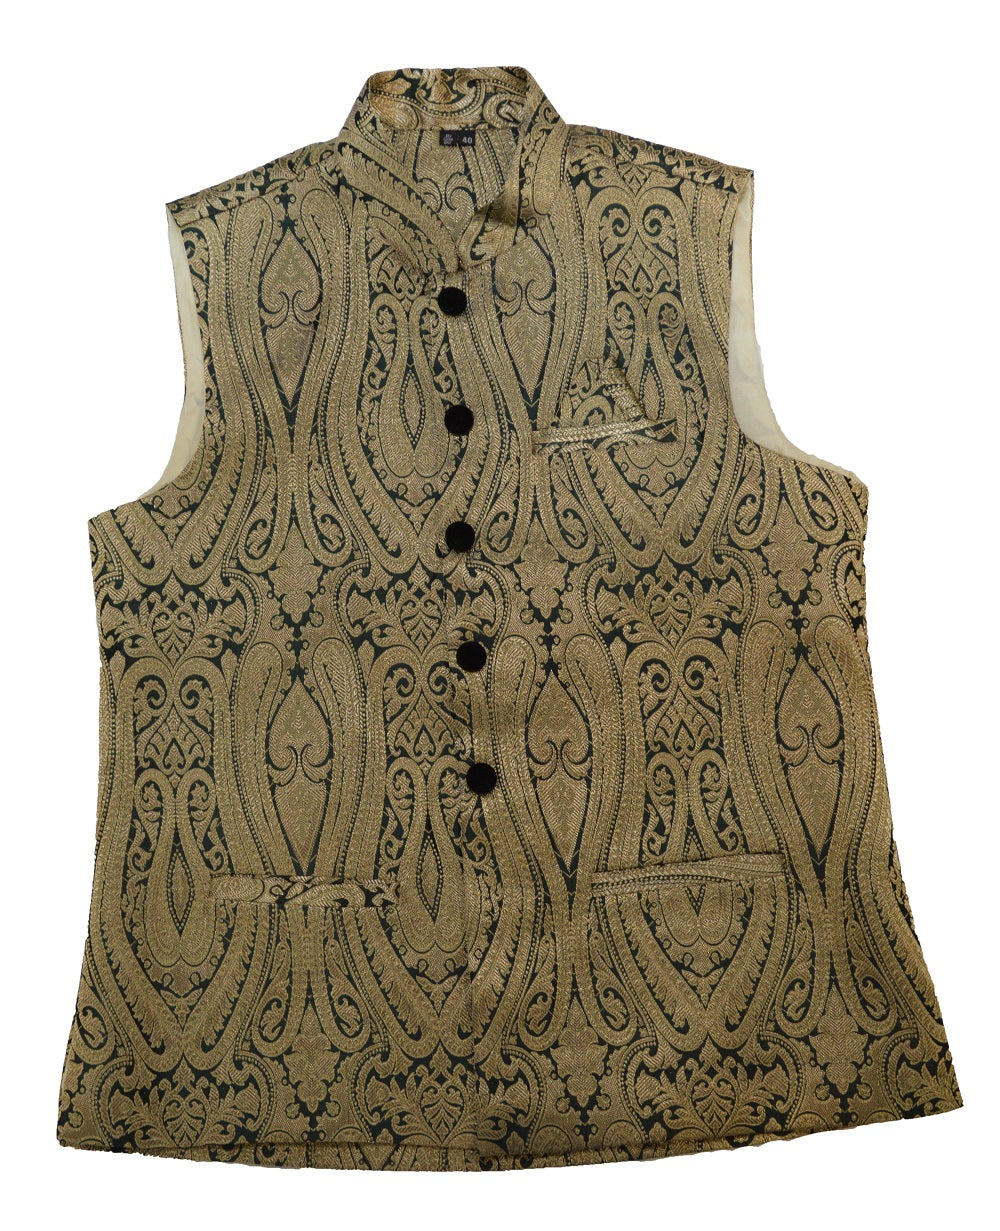 Forest Green and Gold Waistcoat